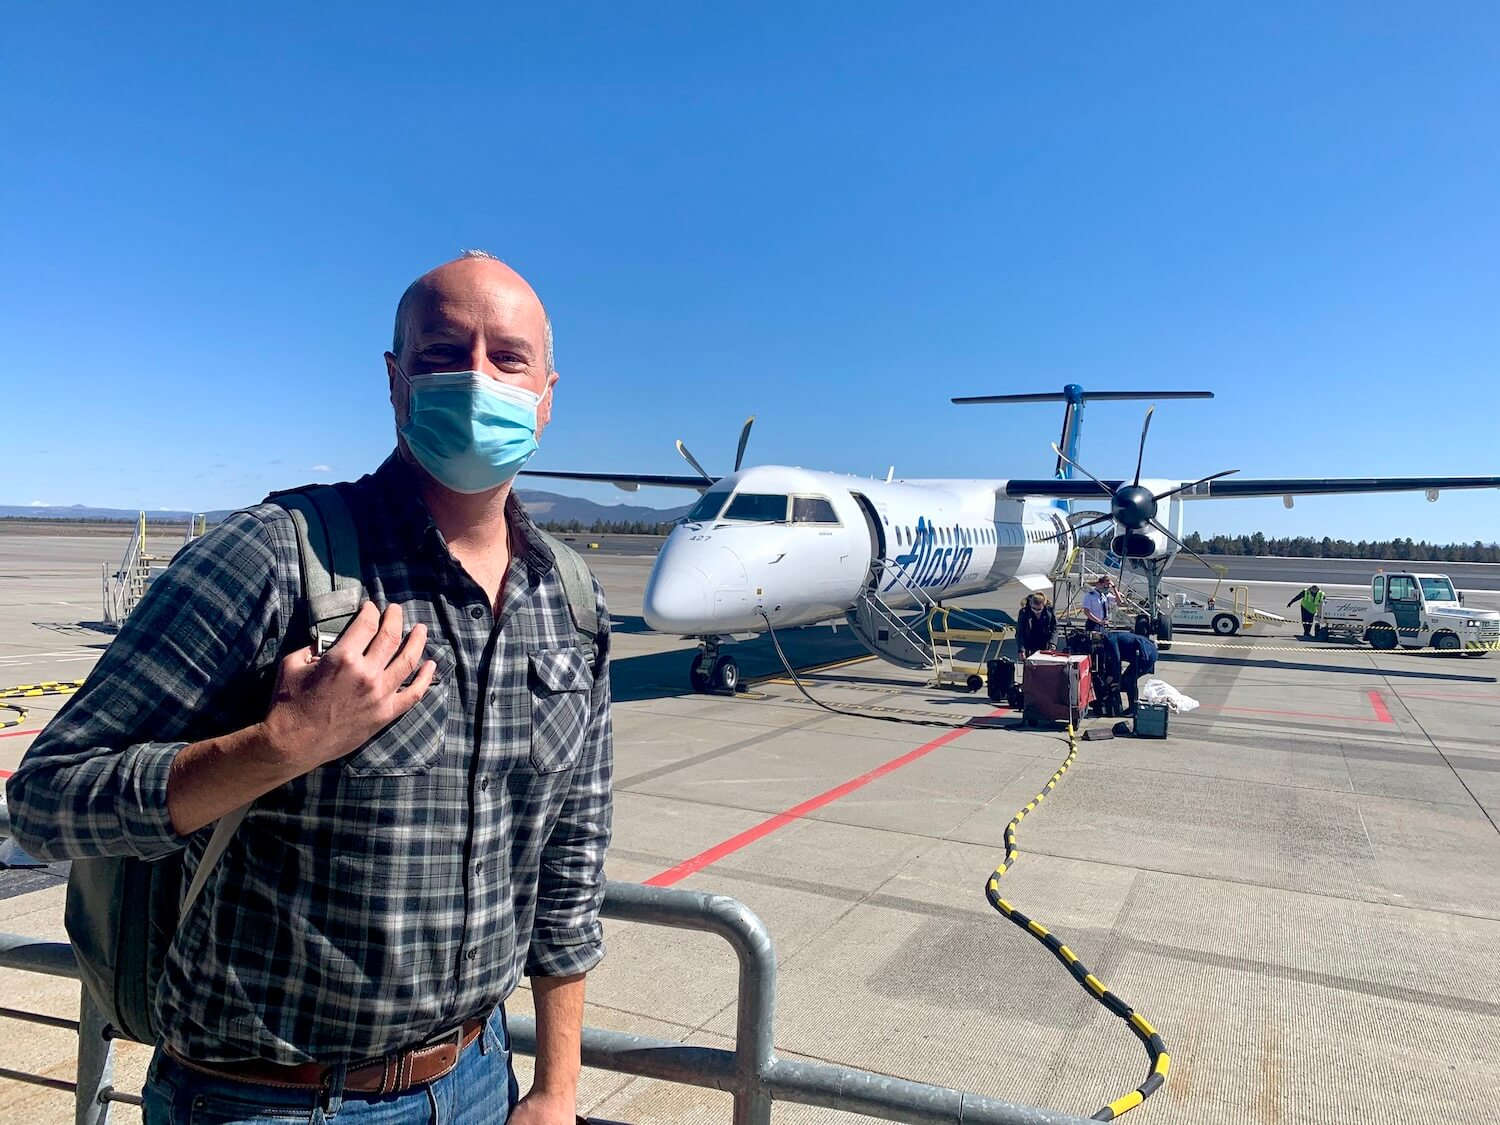 Matthew Kessi deplanes from his Alaska Airlines flight after using frequent flyer miles to fly to Redmond/Bend Airport for a quick getaway. He's wearing a face mask and carrying a backpack.